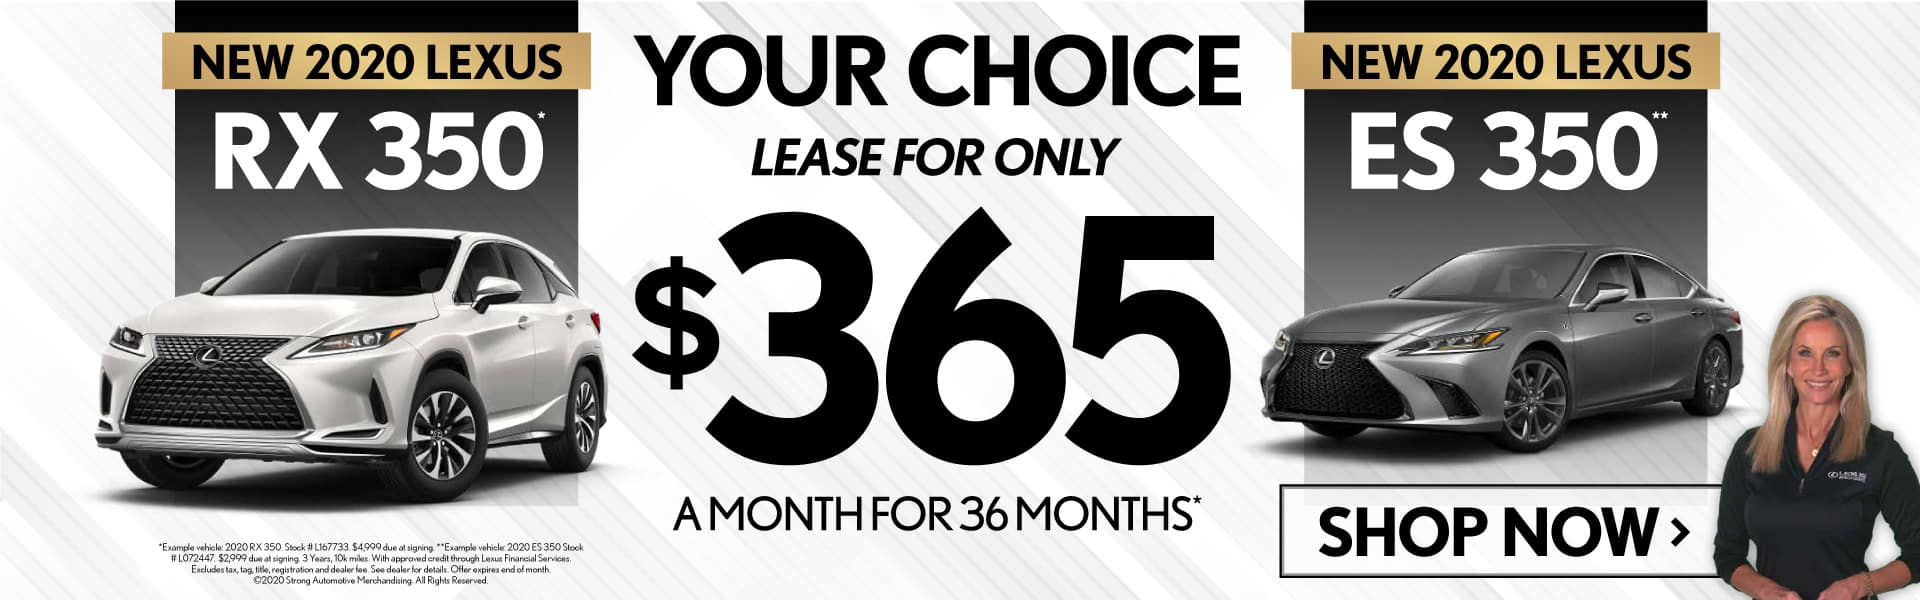 Your Choice: New 2020 Lexus RX 350 or ES 350 only $365/mo. Shop Now.